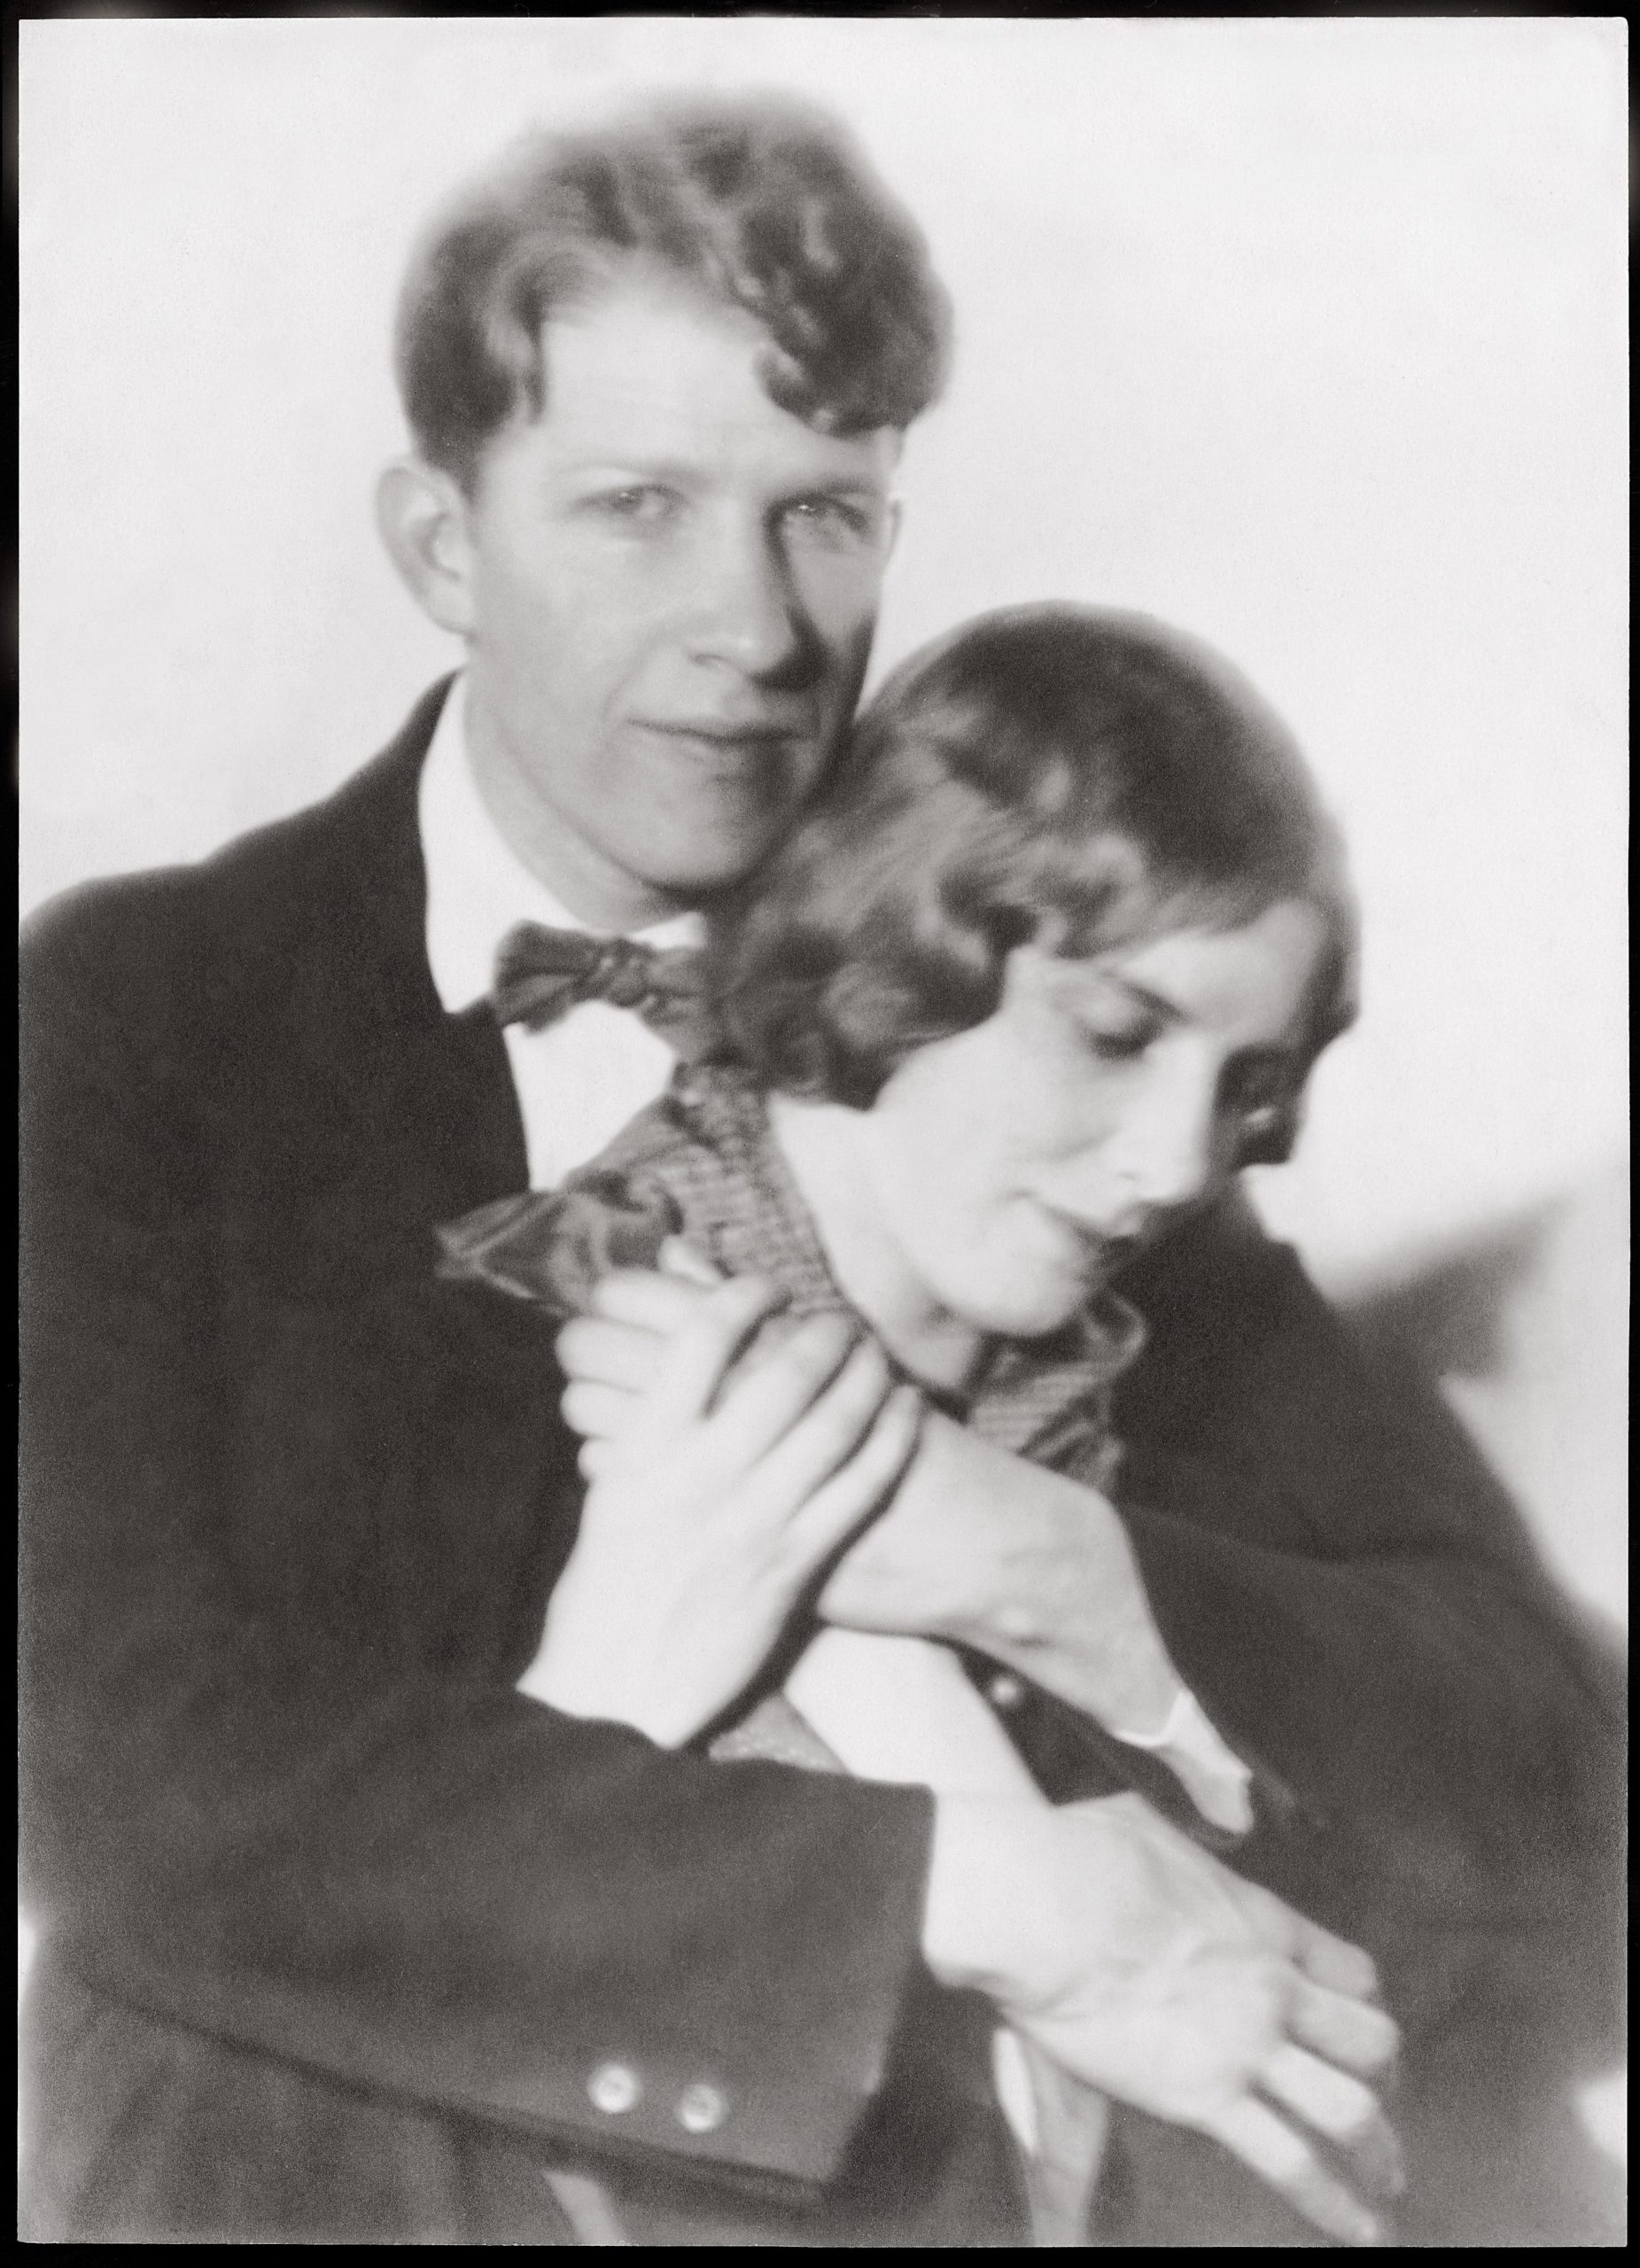 Murphy with Katharine Hawley (who became his second wife) in the early 1920s Courtesy the Murphy Family Collection